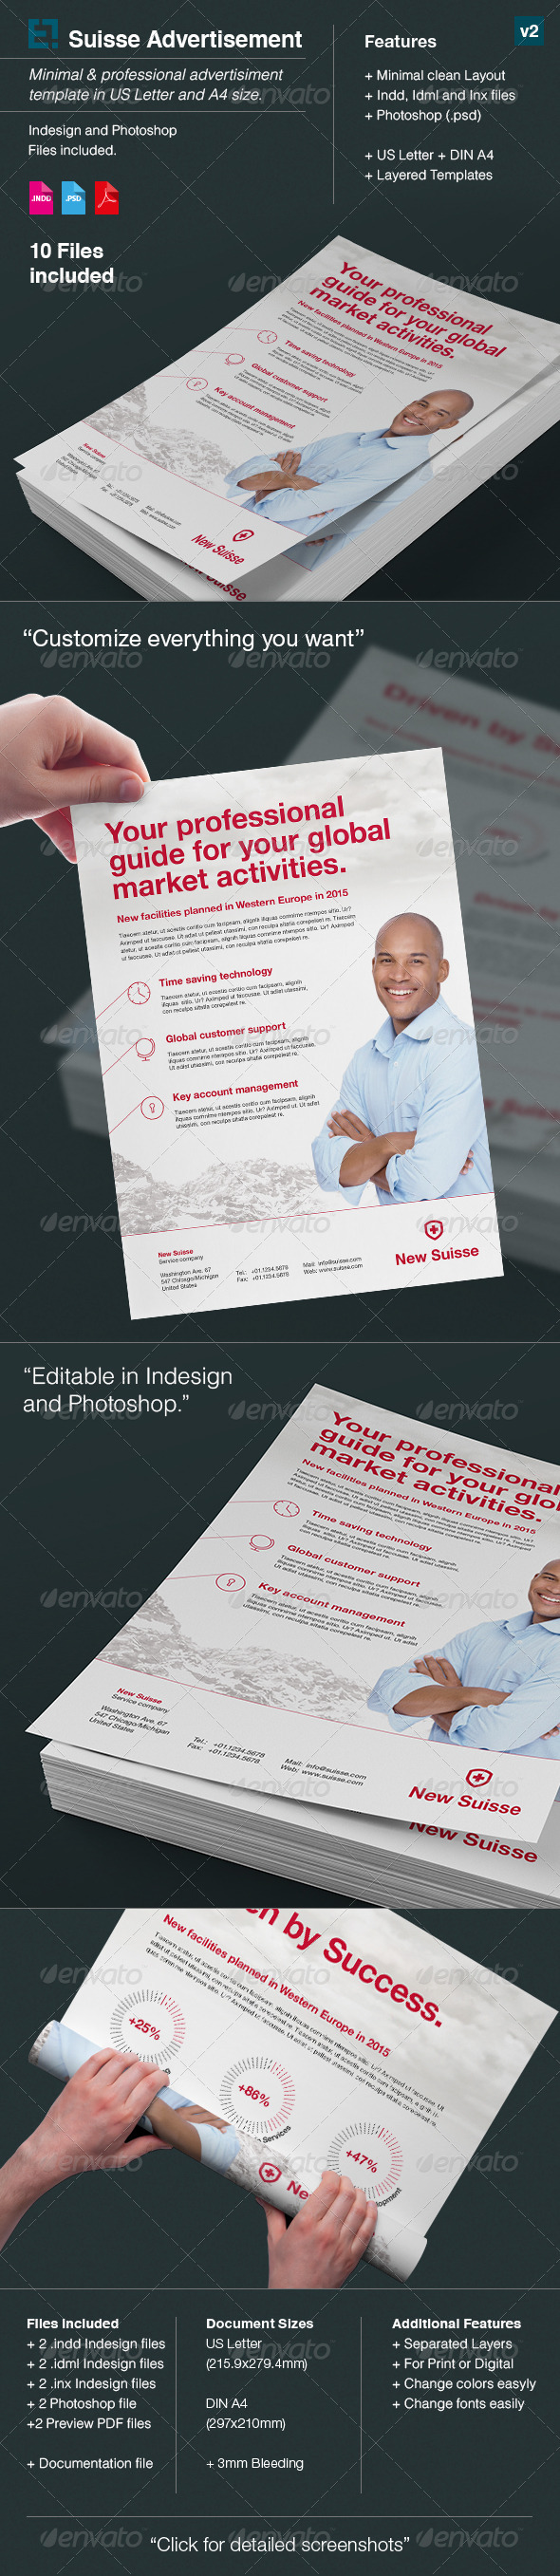 GraphicRiver Suisse Corporate Advert US Letter A4 v2 7804701